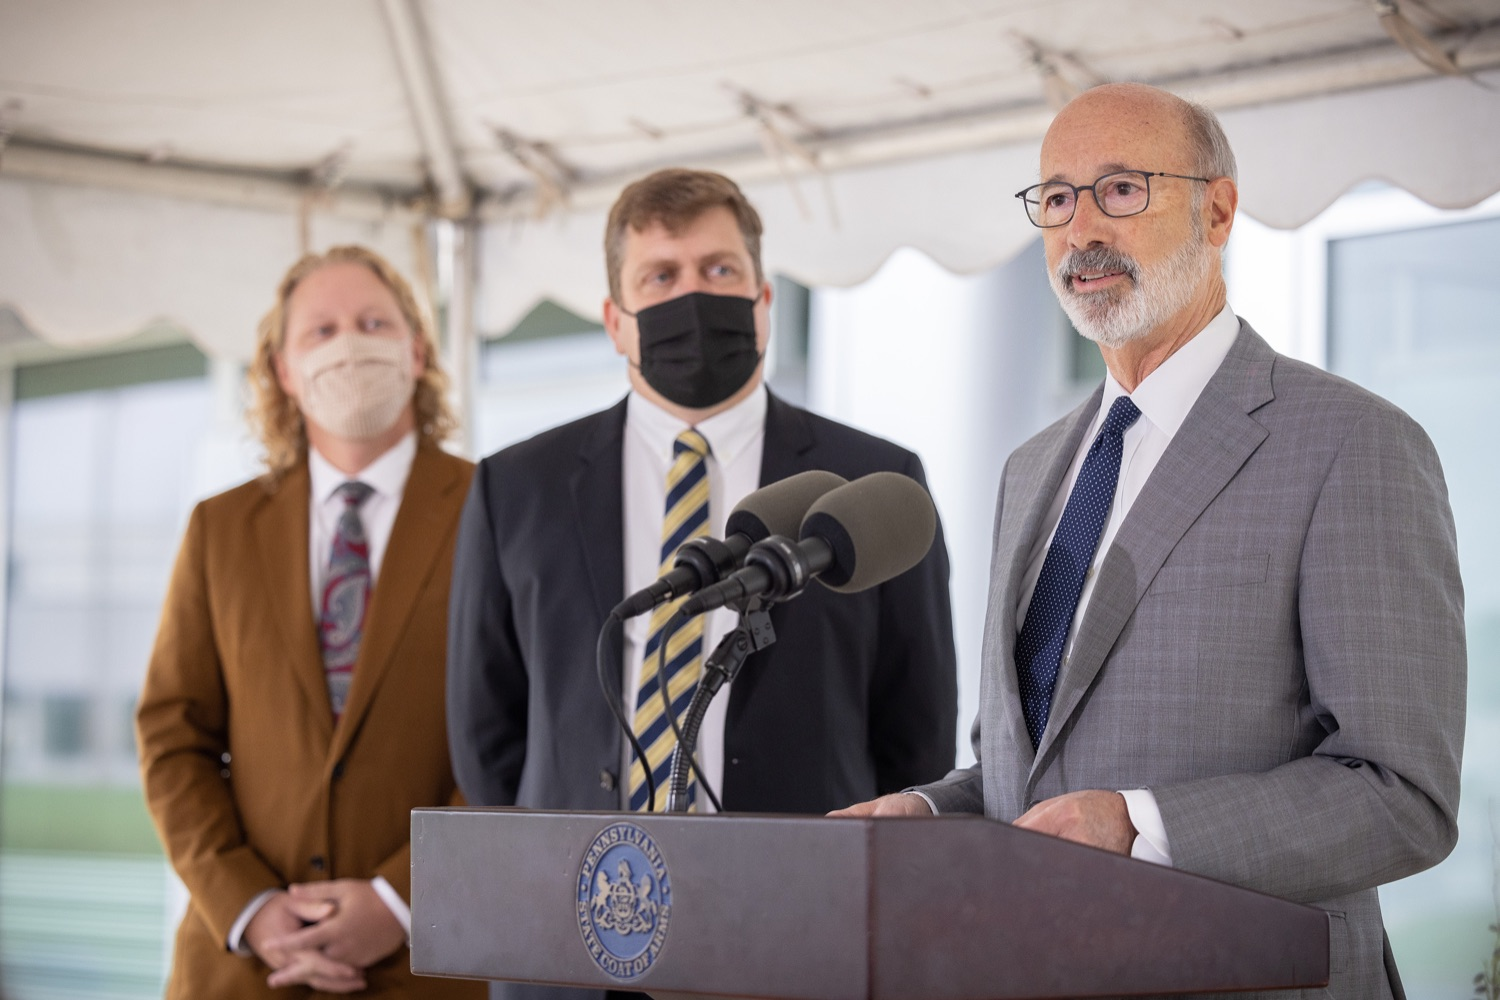 """<a href=""""https://filesource.wostreaming.net/commonwealthofpa/photo/20138_gov_BioTechniqueRibbon_dz_001.JPG"""" target=""""_blank"""">⇣Download Photo<br></a>Pennsylvania Governor Tom Wolf speaking with the press.  Governor Tom Wolf today joined BioTechnique CEO John Clapham, the Department of Community and Economic Developments (DCED) Governors Action Team (GAT), York County Economic Alliance CEO Kevin Schreiber, and local officials at the ribbon cutting ceremony for BioTechniques new pharmaceutical manufacturing facility in York County.   OCTOBER 12, 2021 - YORK, PA"""